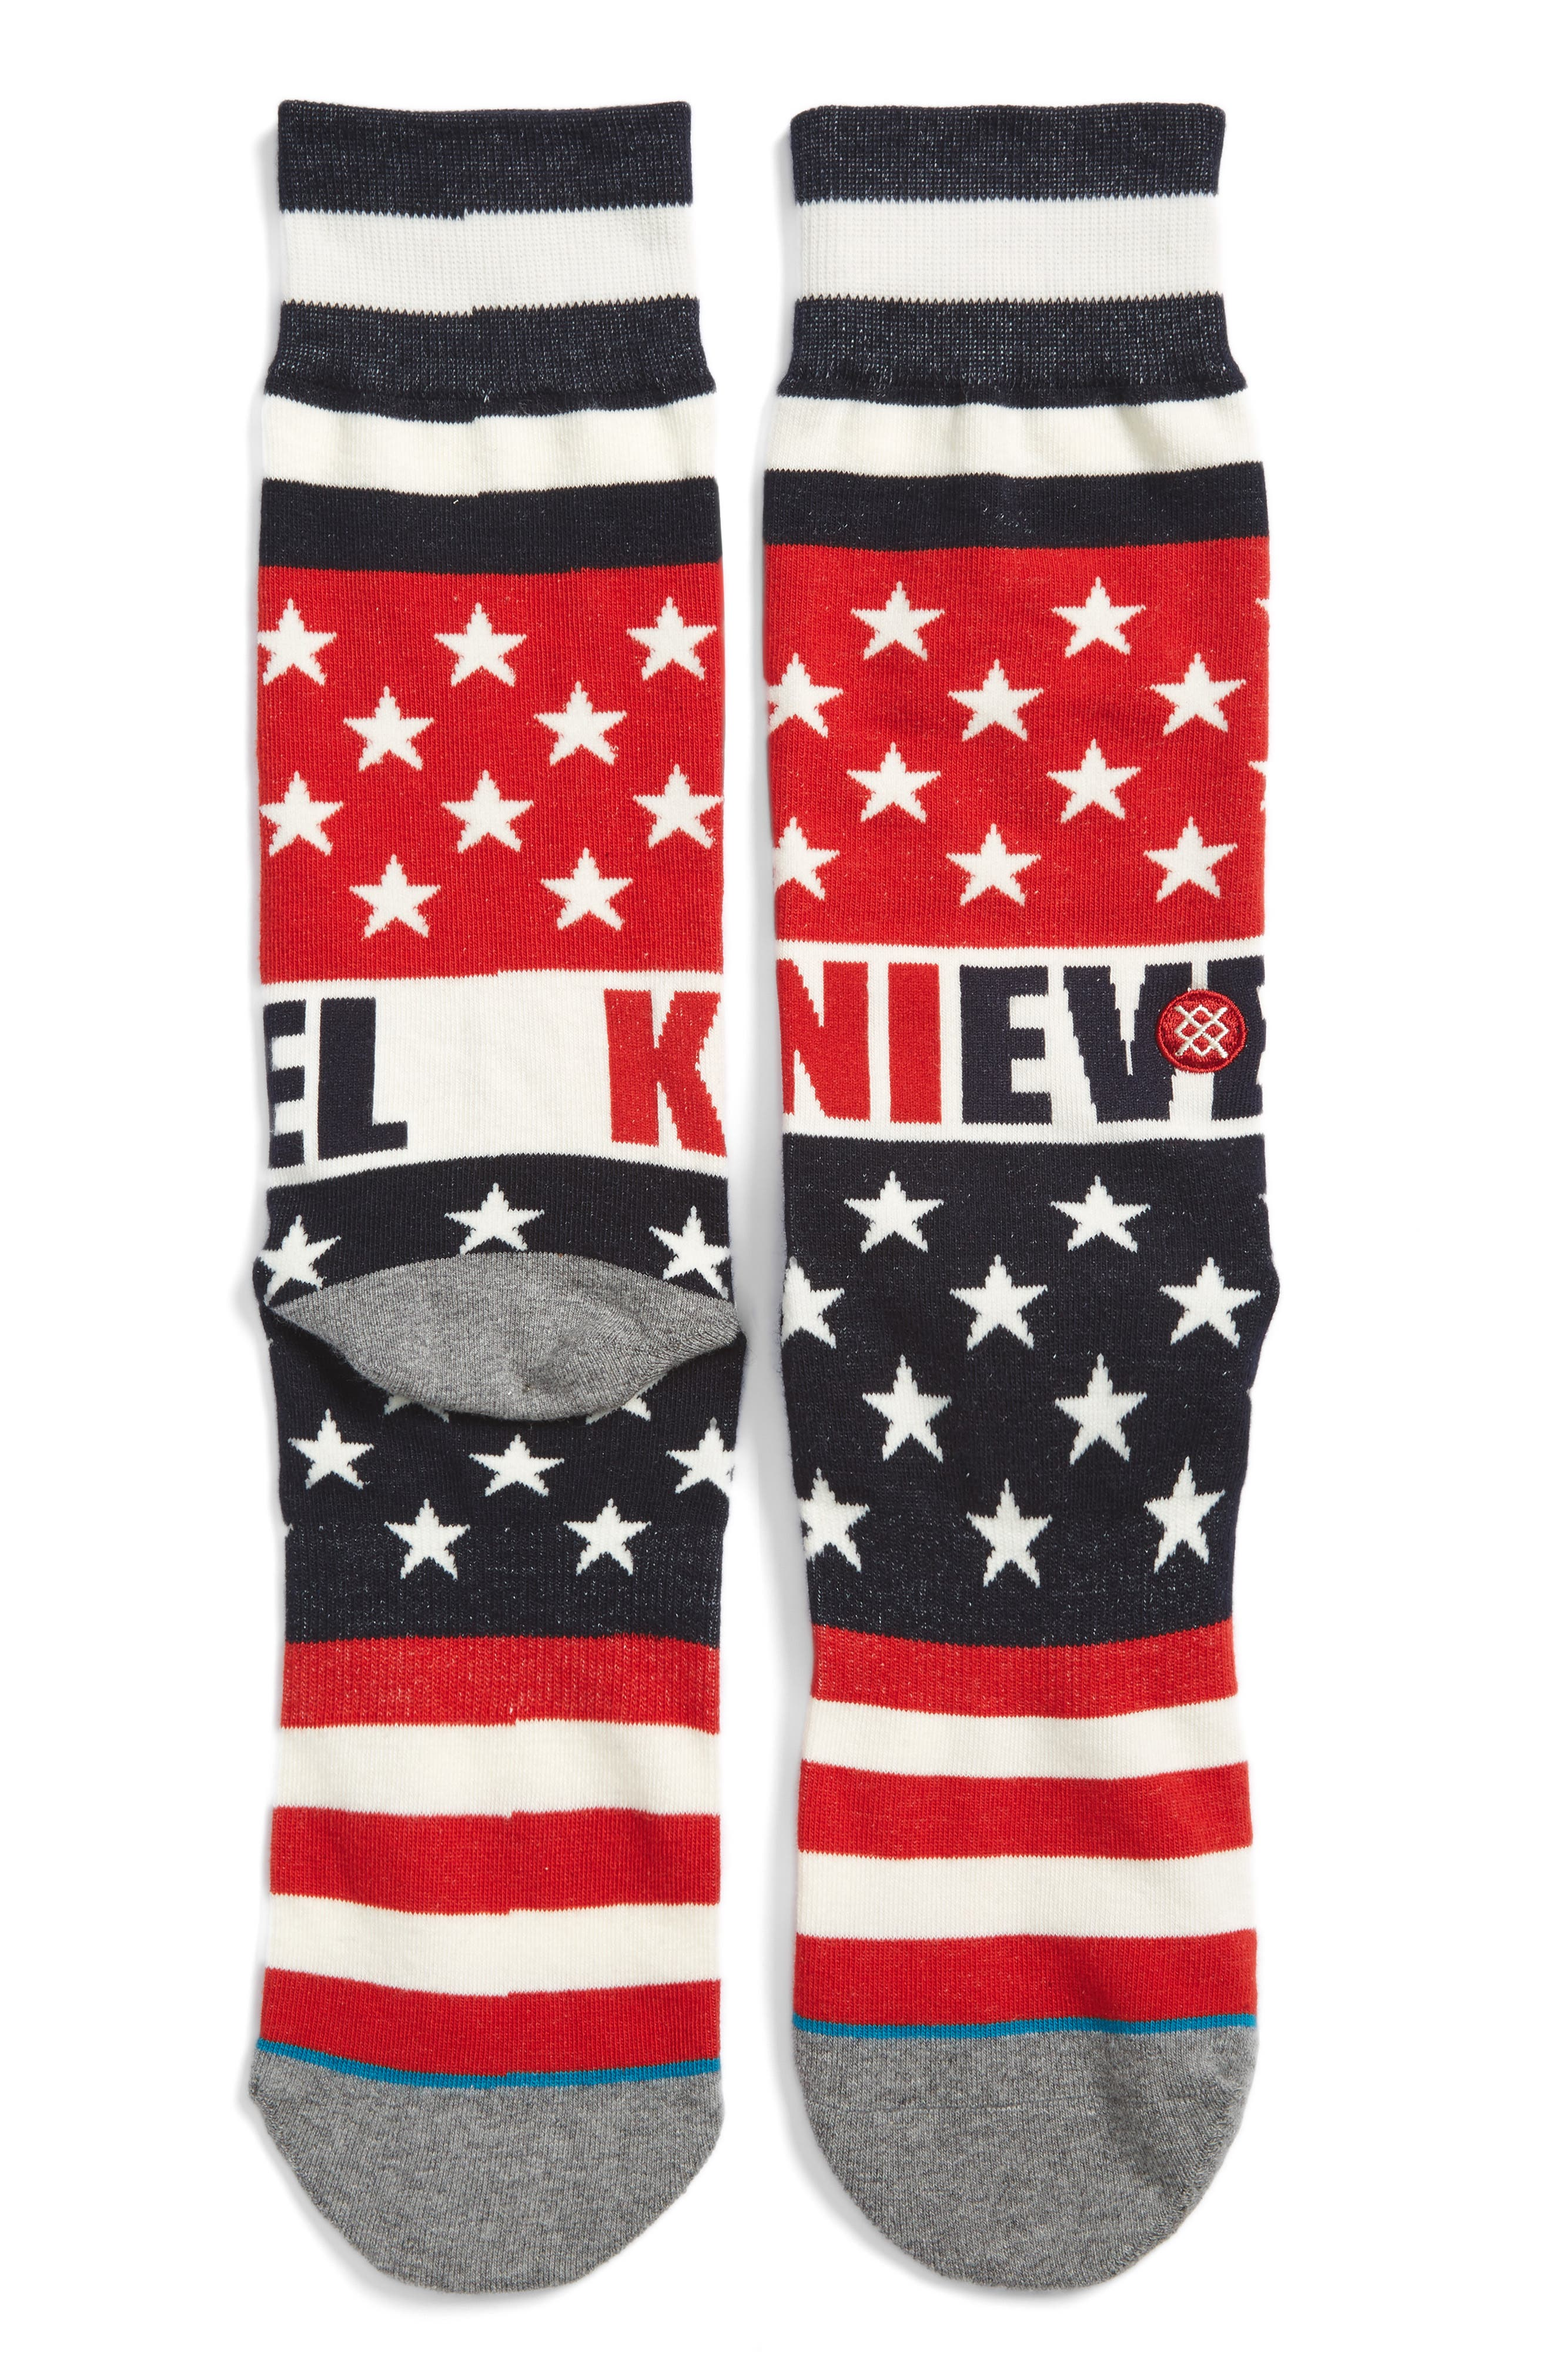 Evel Knievel x Stance Gladiator Socks,                         Main,                         color, Red